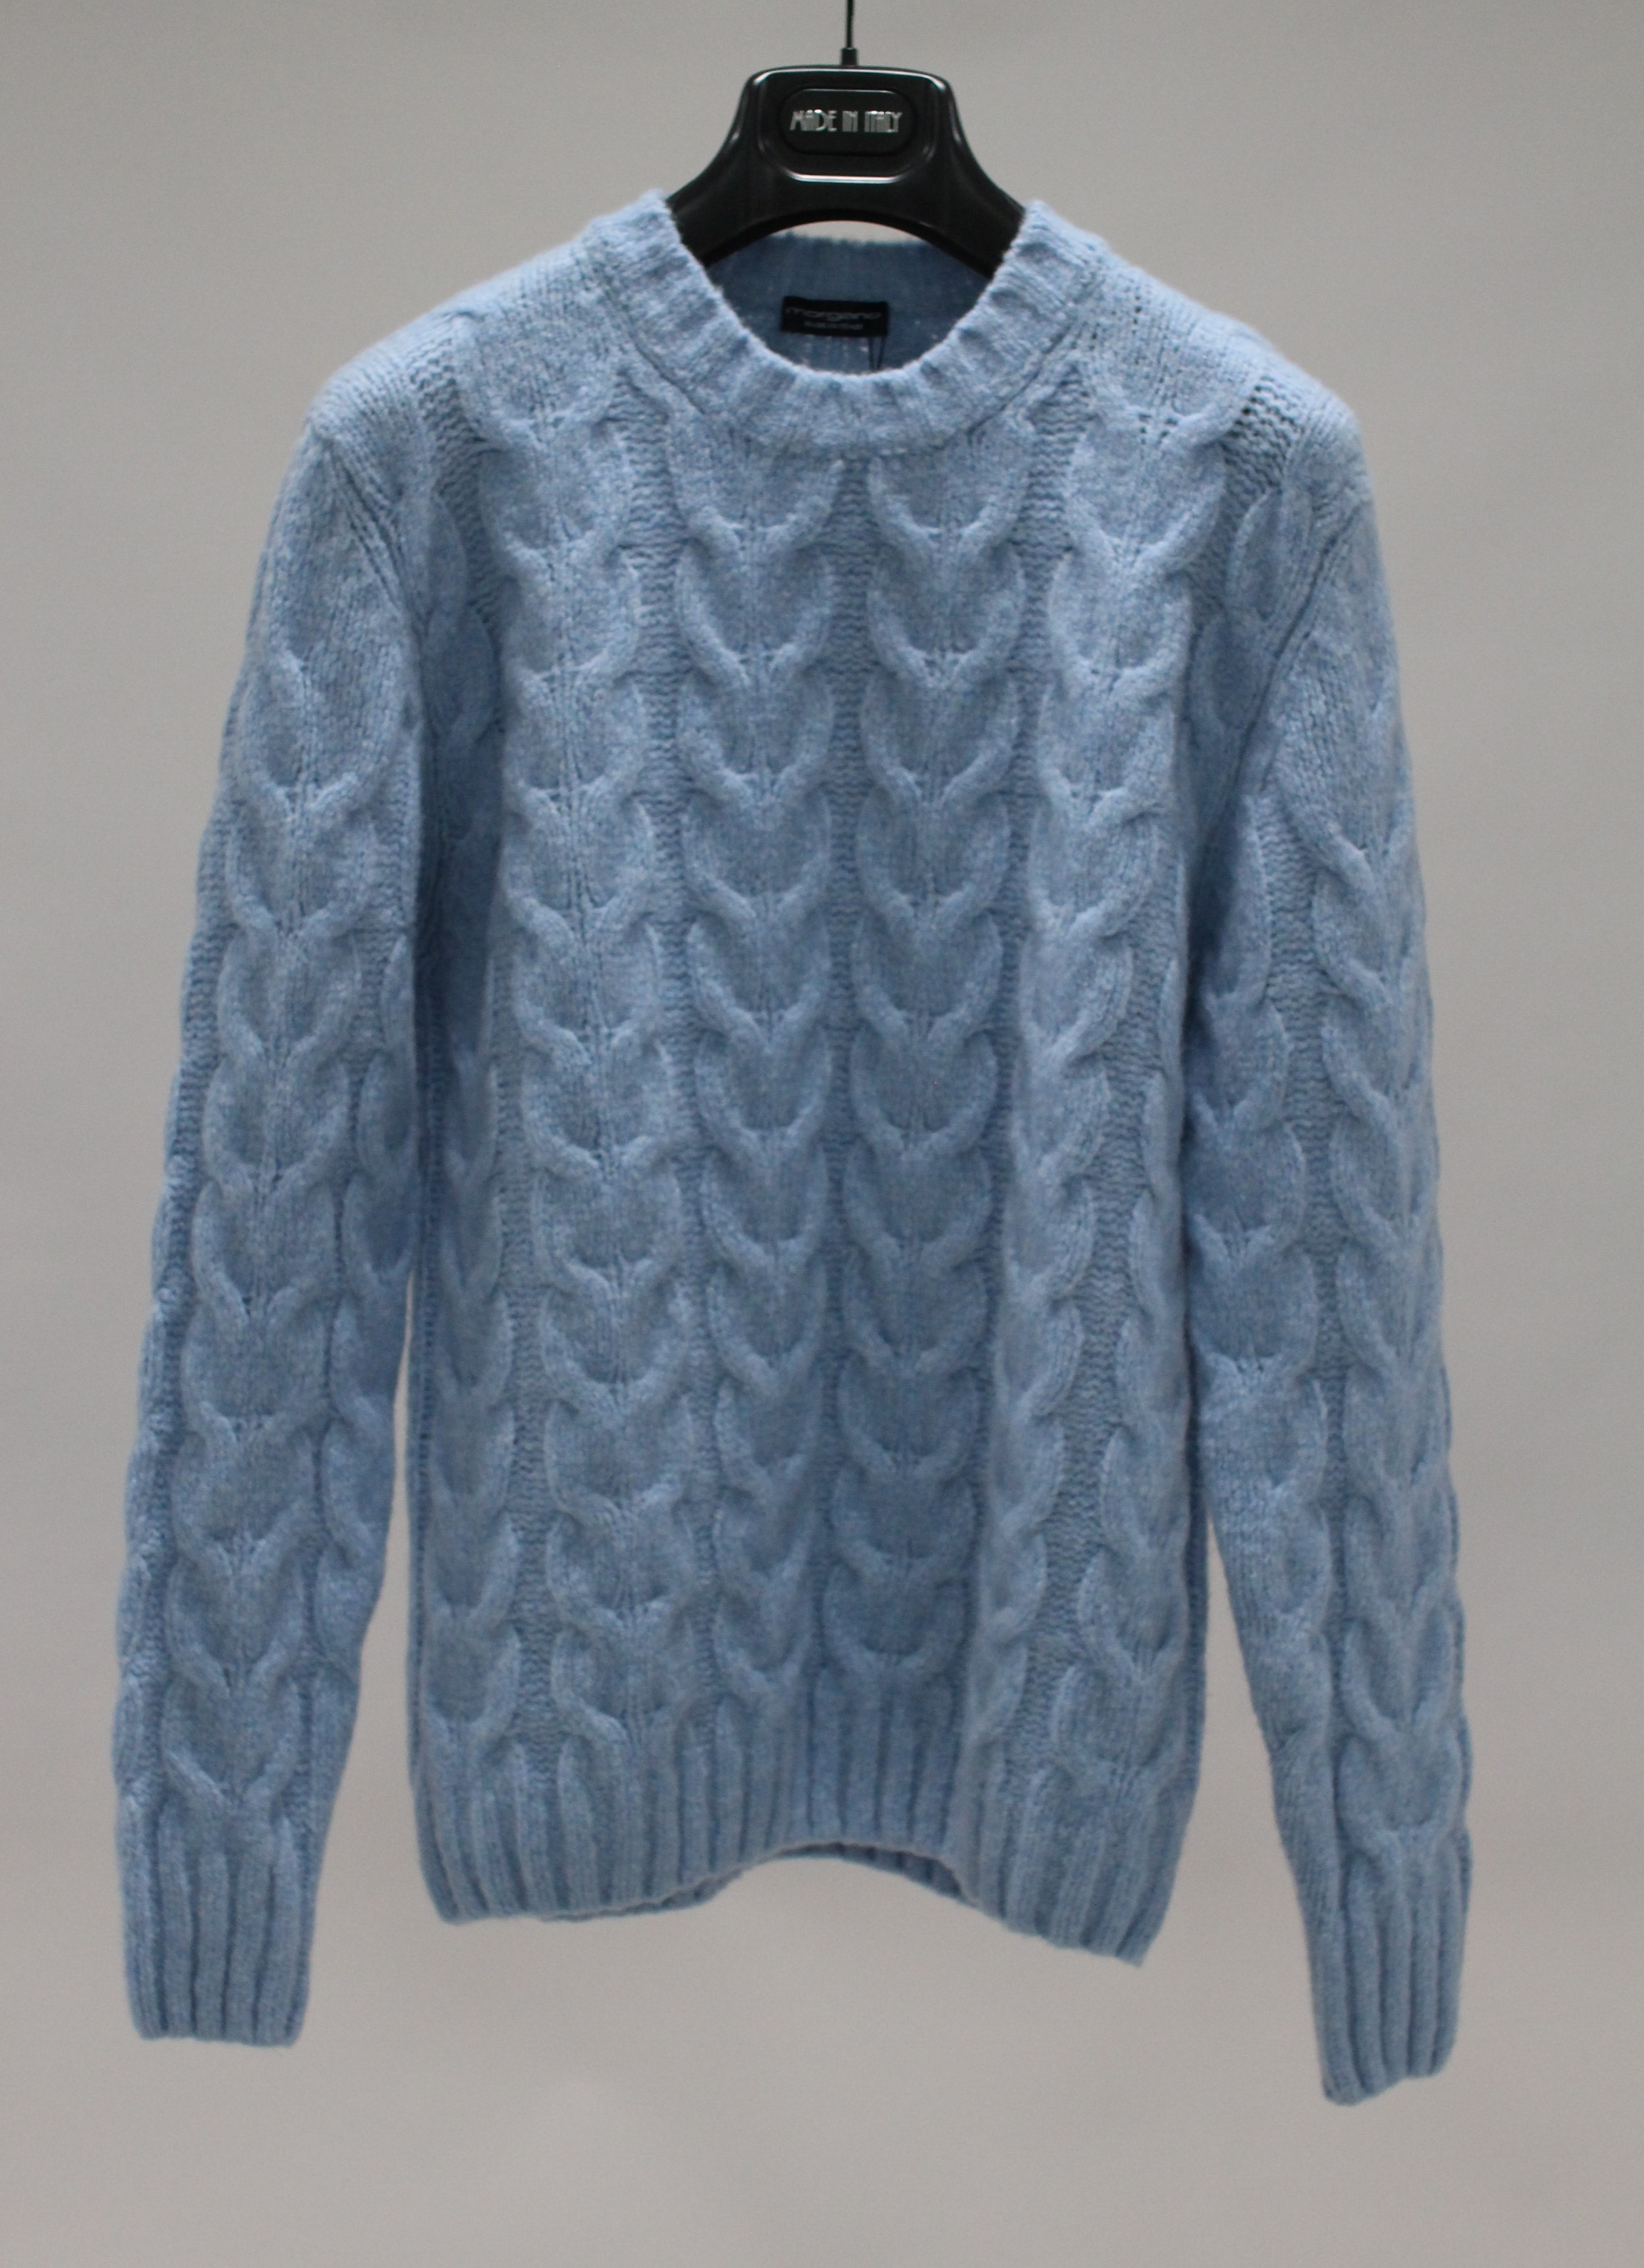 20FW WOOL/CASH blended cable sweater SkyblueMorgano(모르가노)8/13 까지 입점기념 15%세일